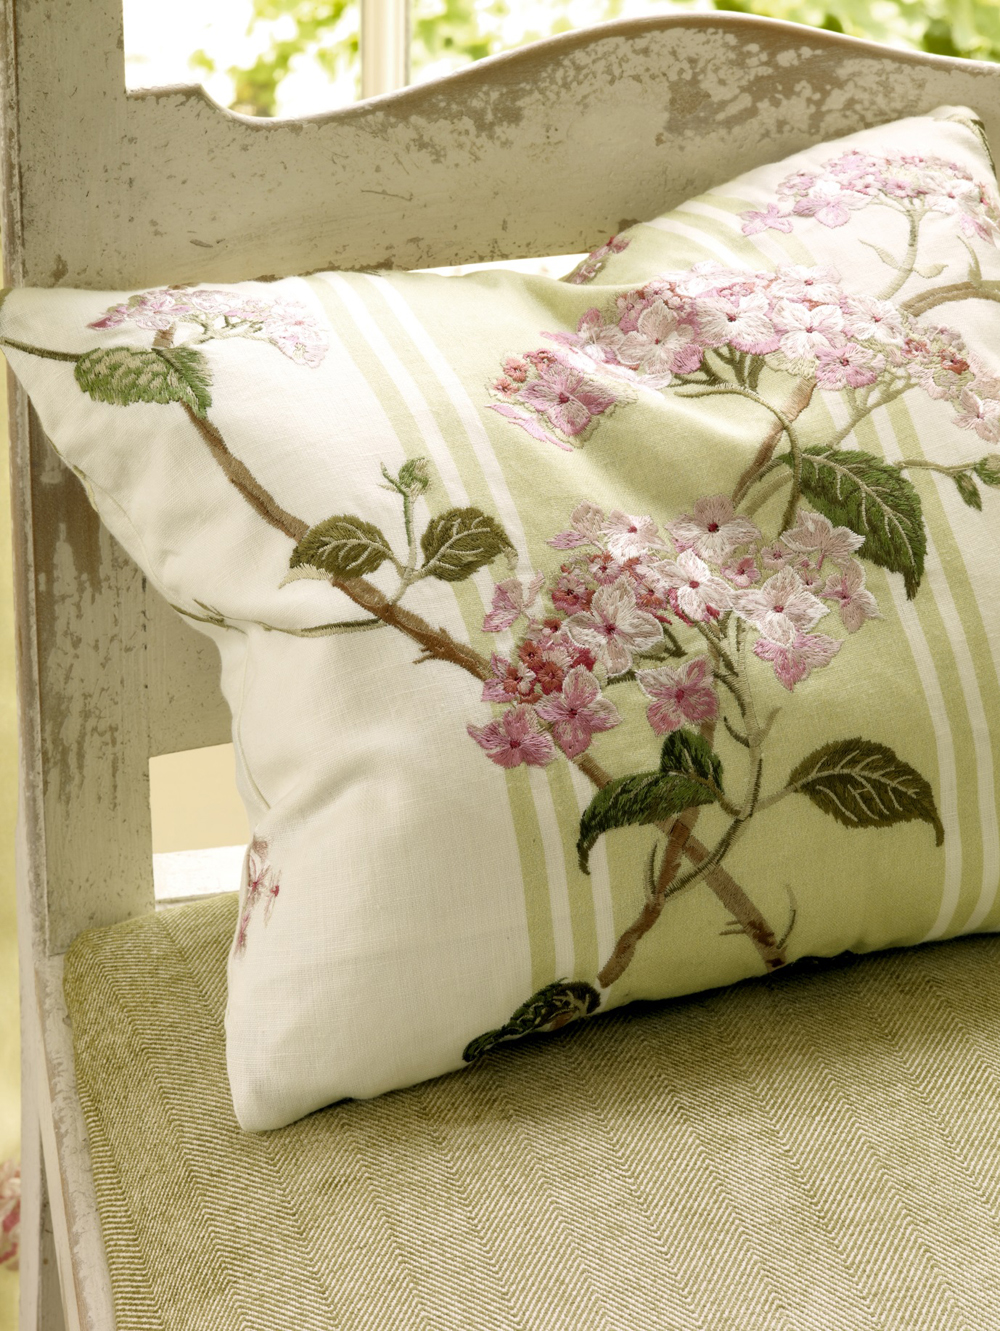 Jenny Blanc Blog - Colefax and Fowler Fabric Cushion